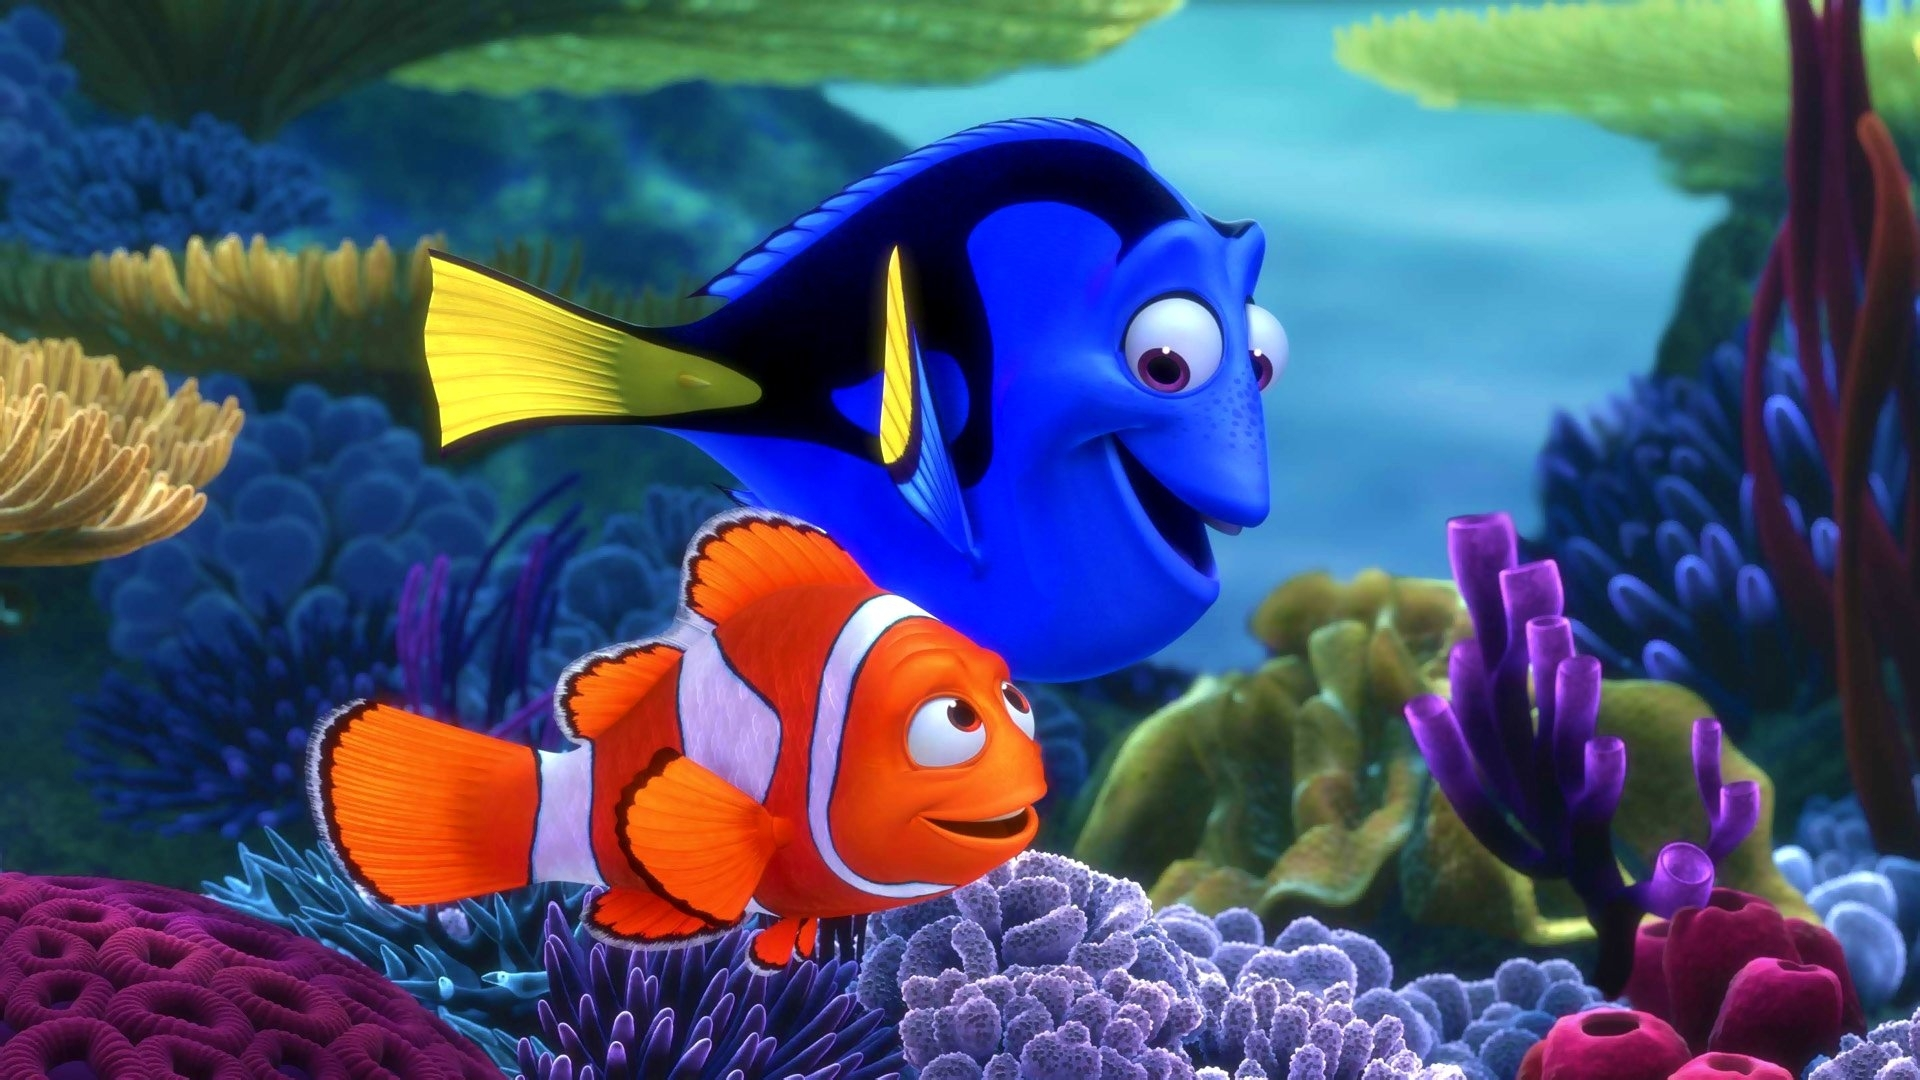 33 finding nemo hd wallpapers | background images - wallpaper abyss